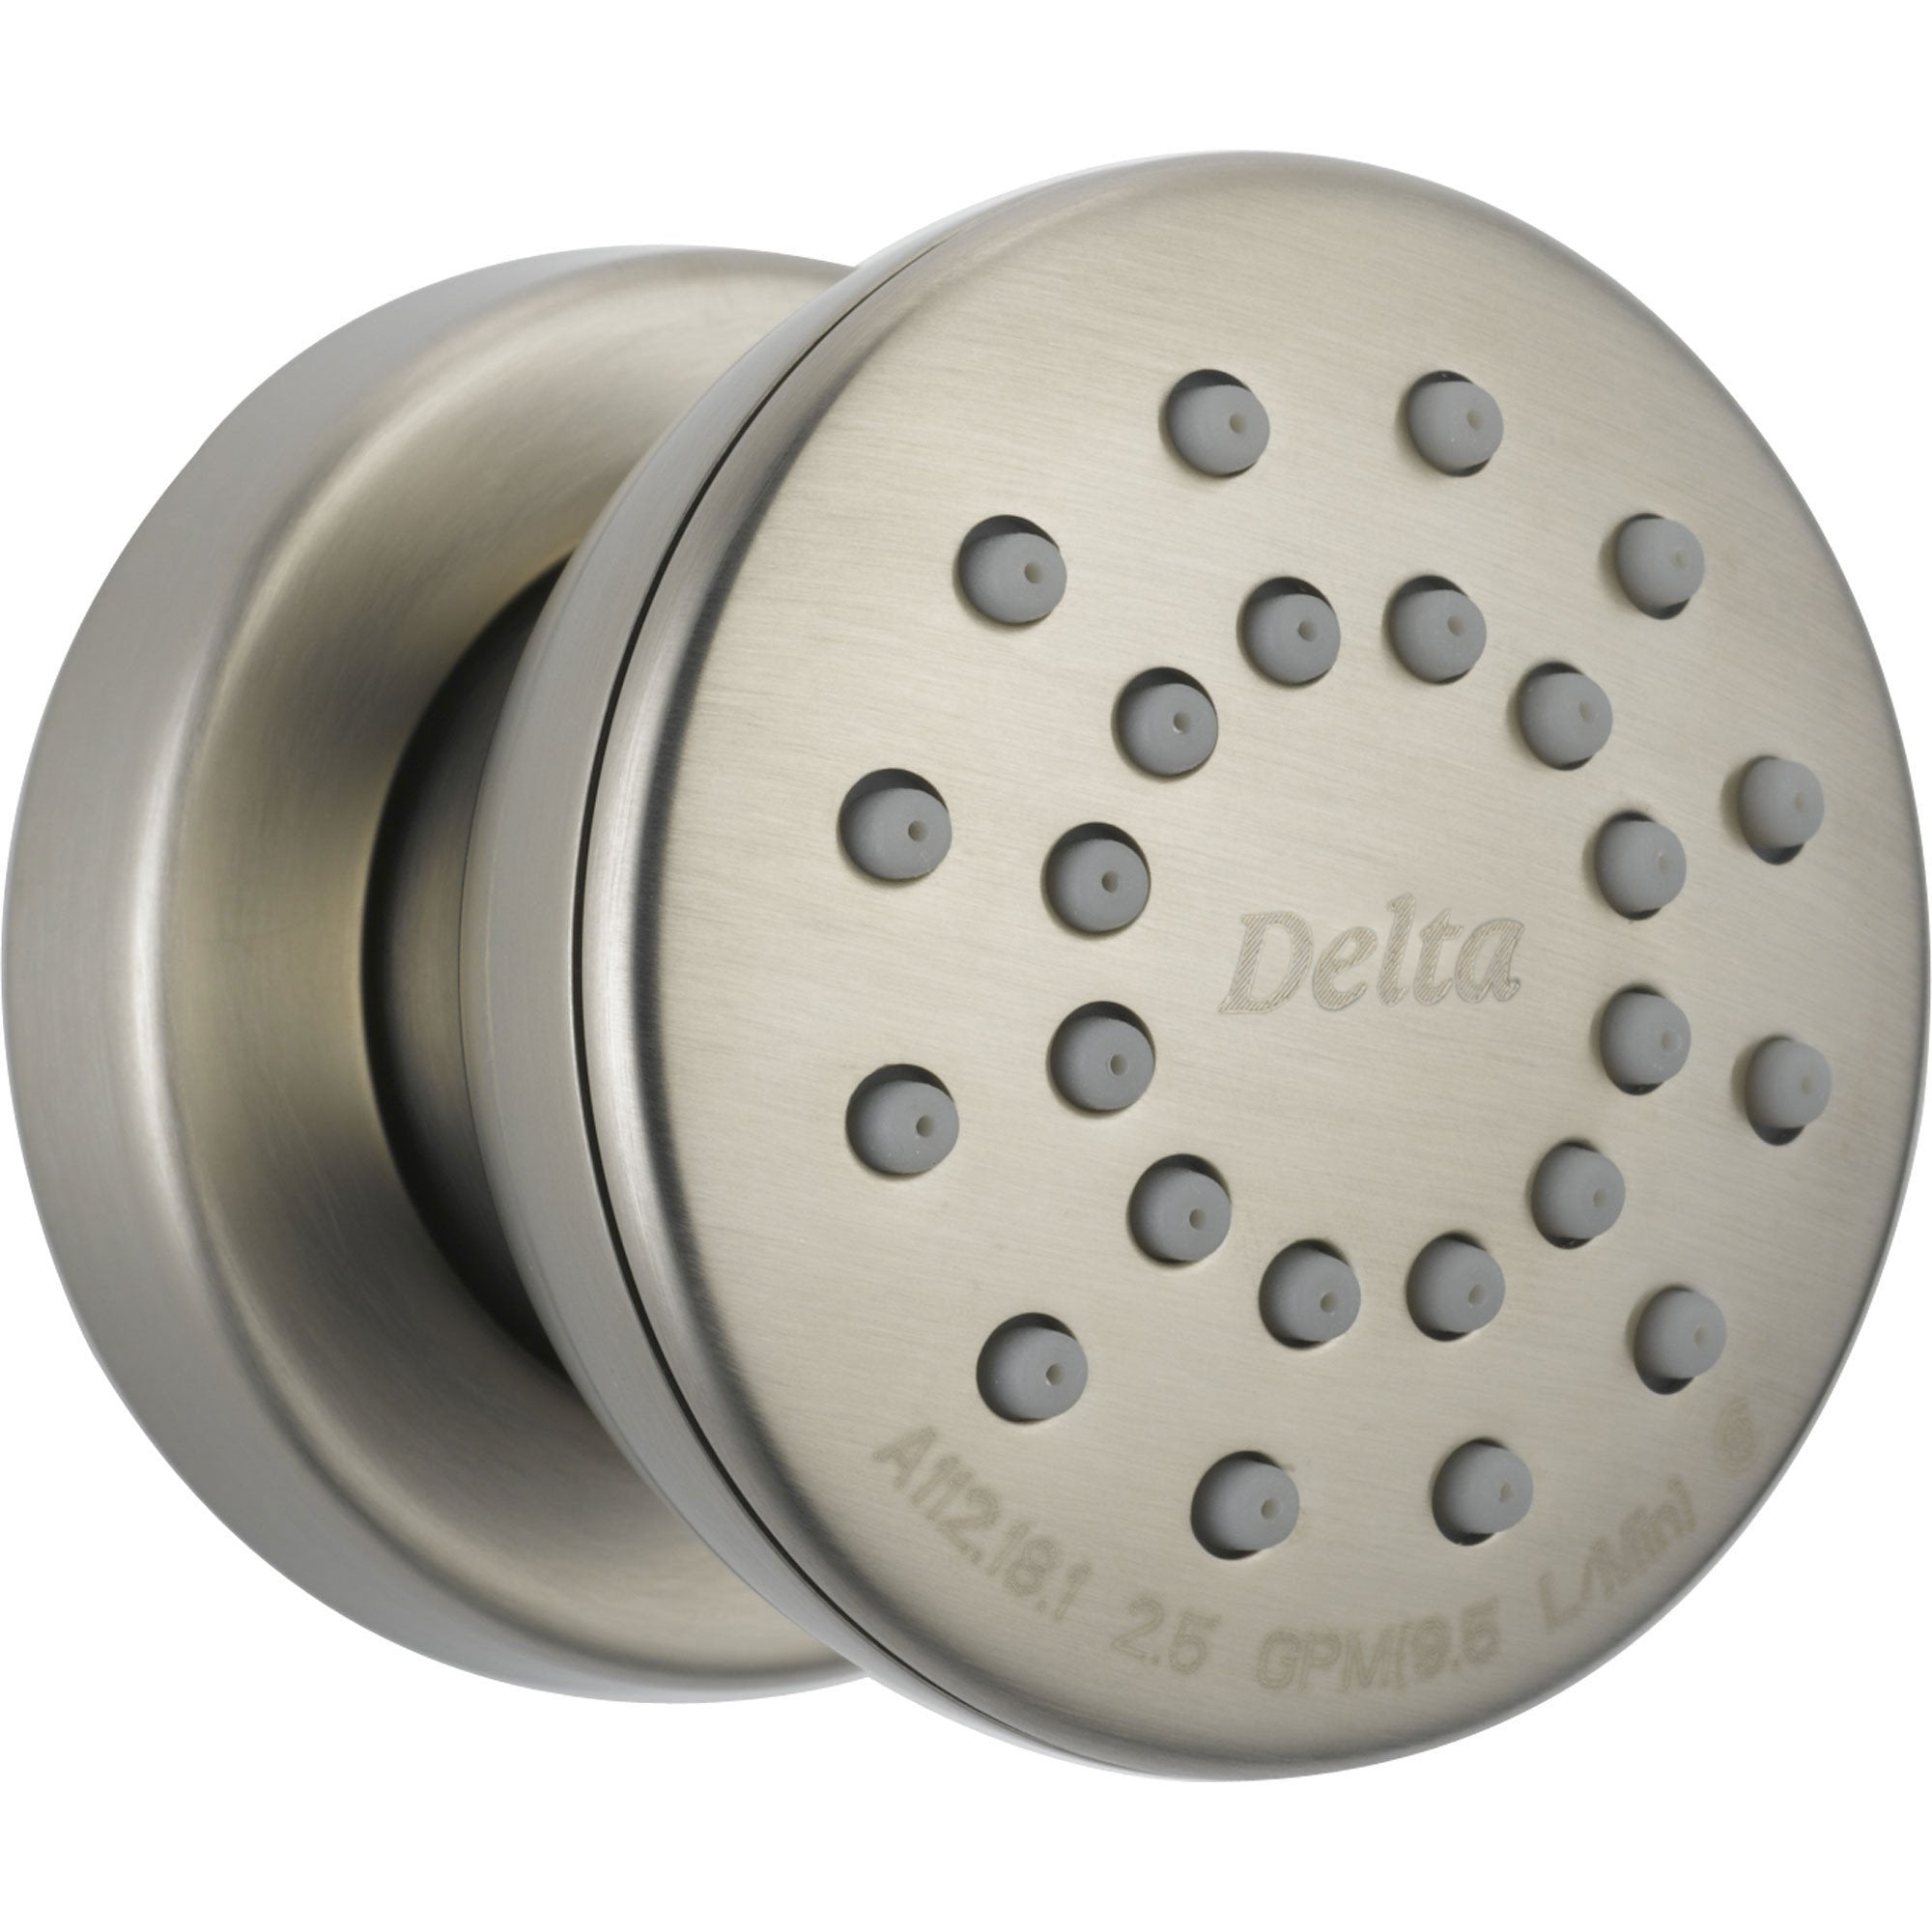 Delta Classic Stainless Steel Finish Shower Round Body Spray Jet 542620